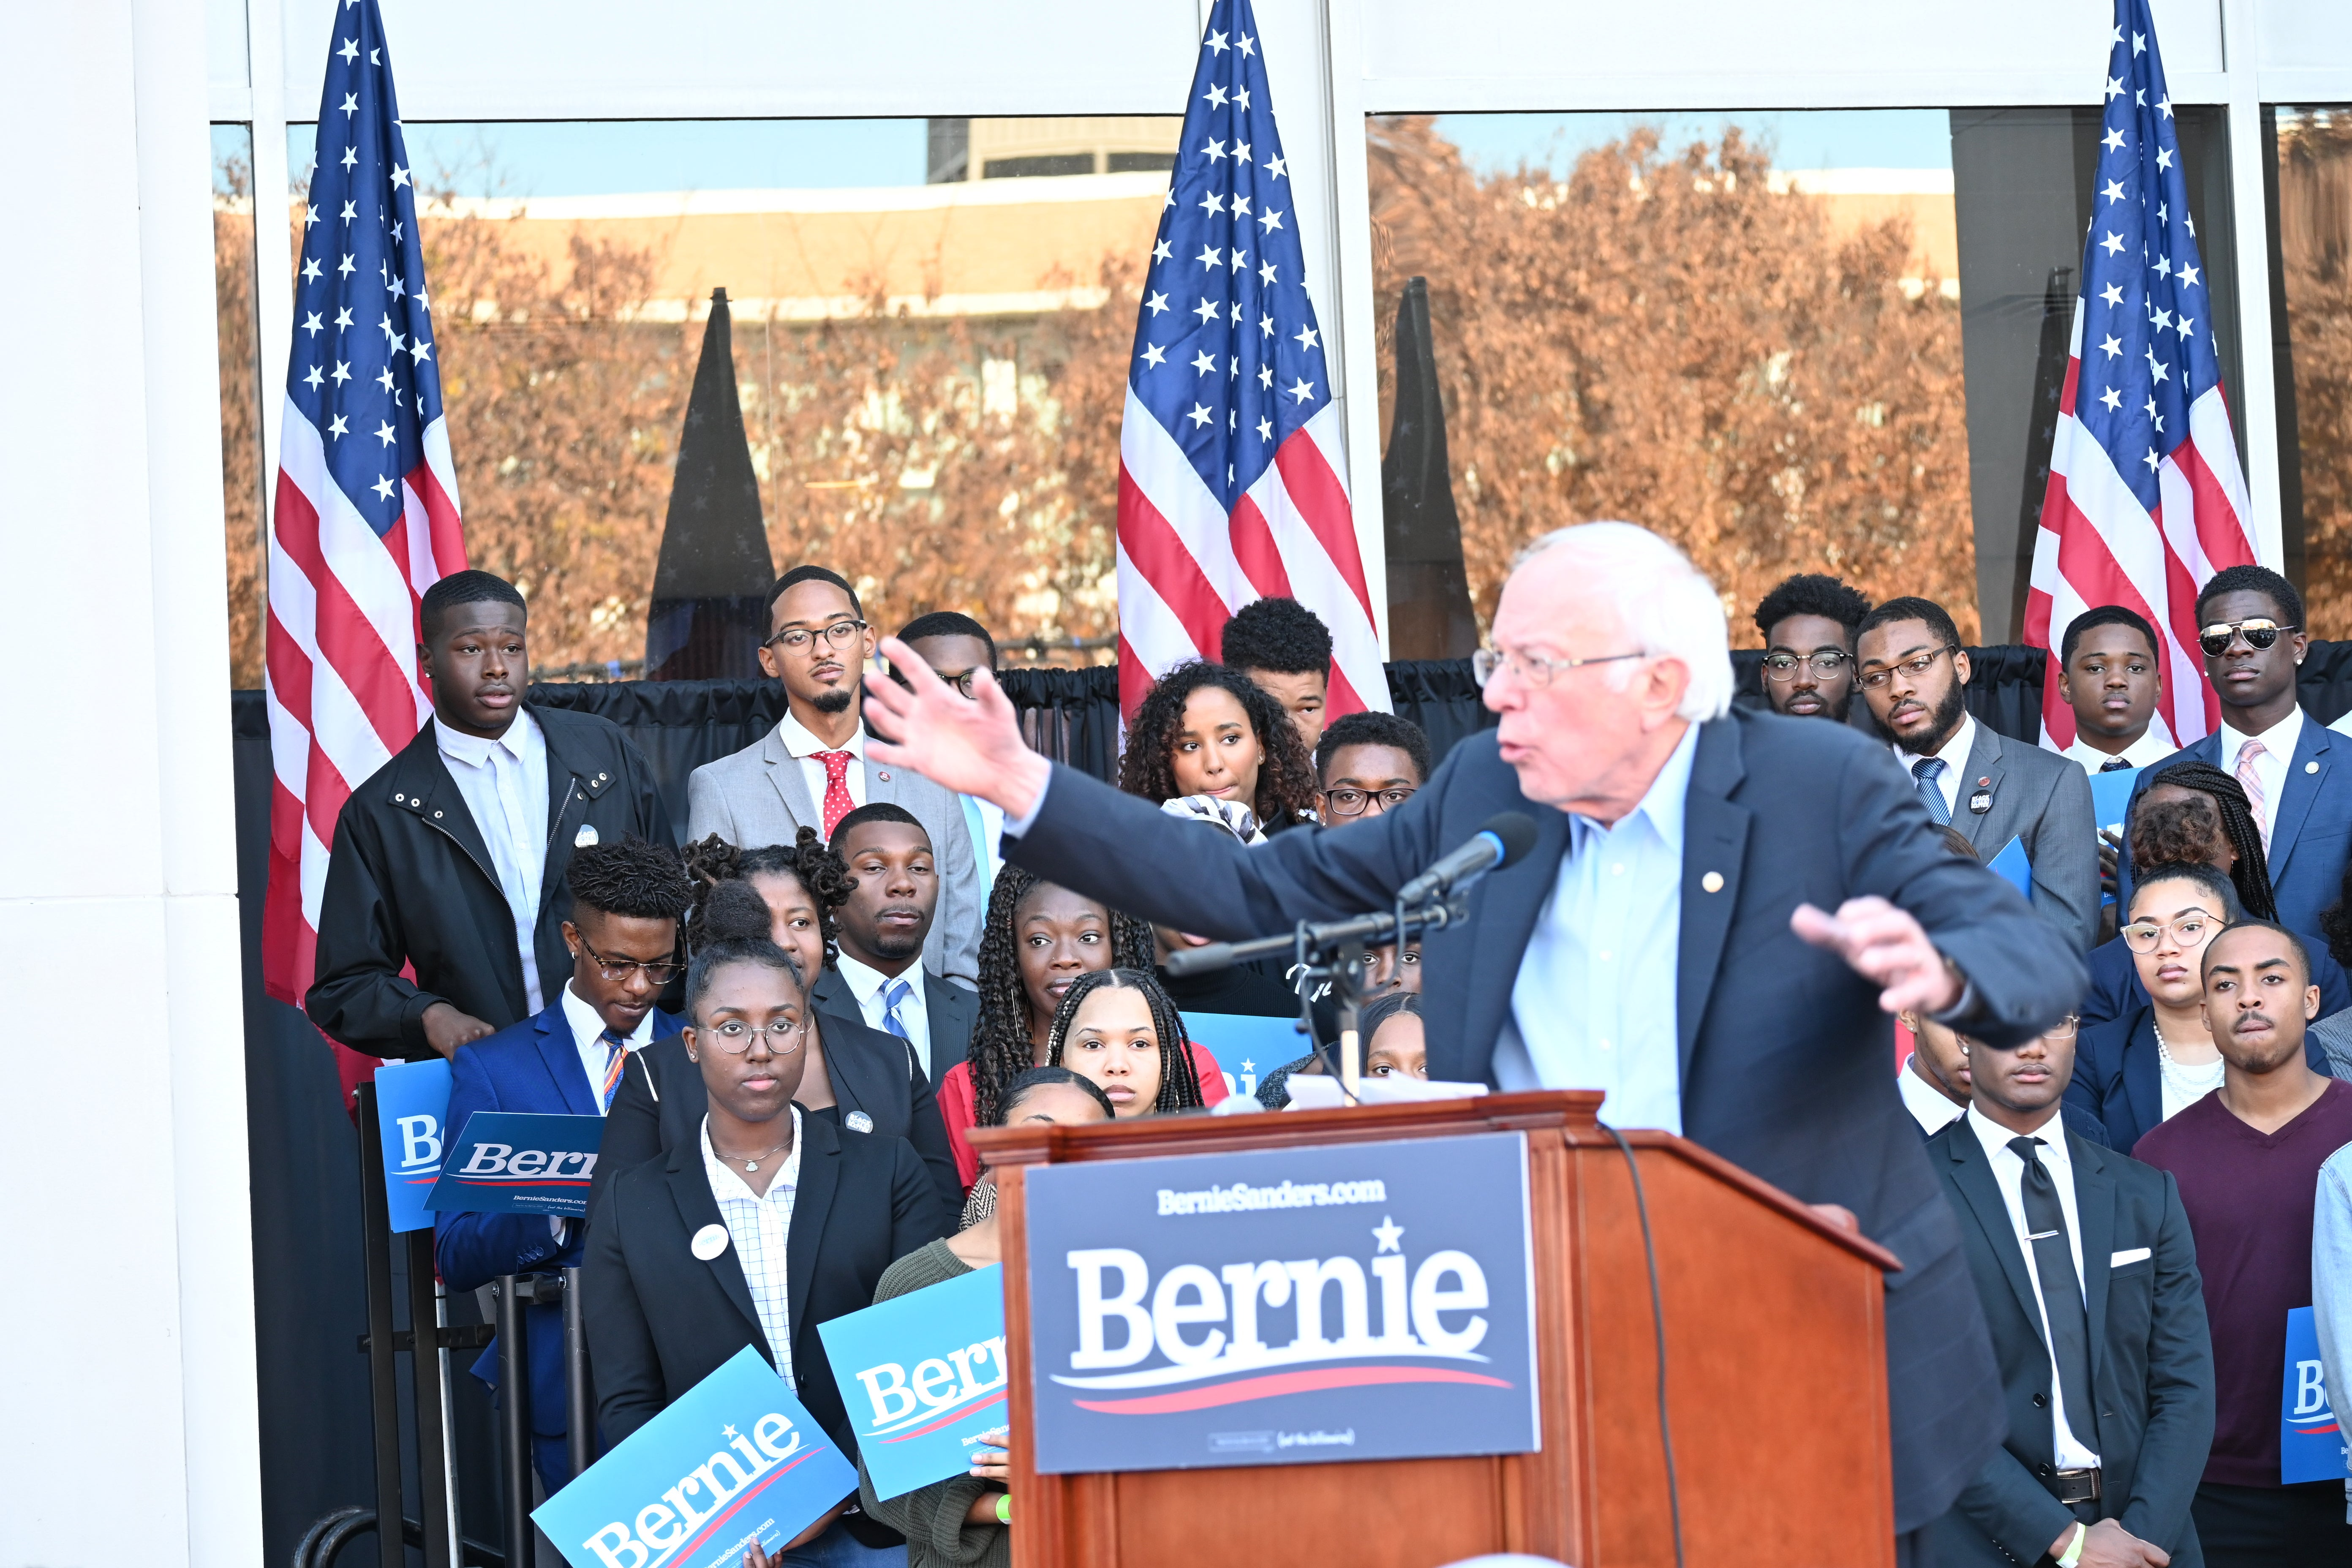 Bernie Sanders campaign holds rally at Morehouse college.